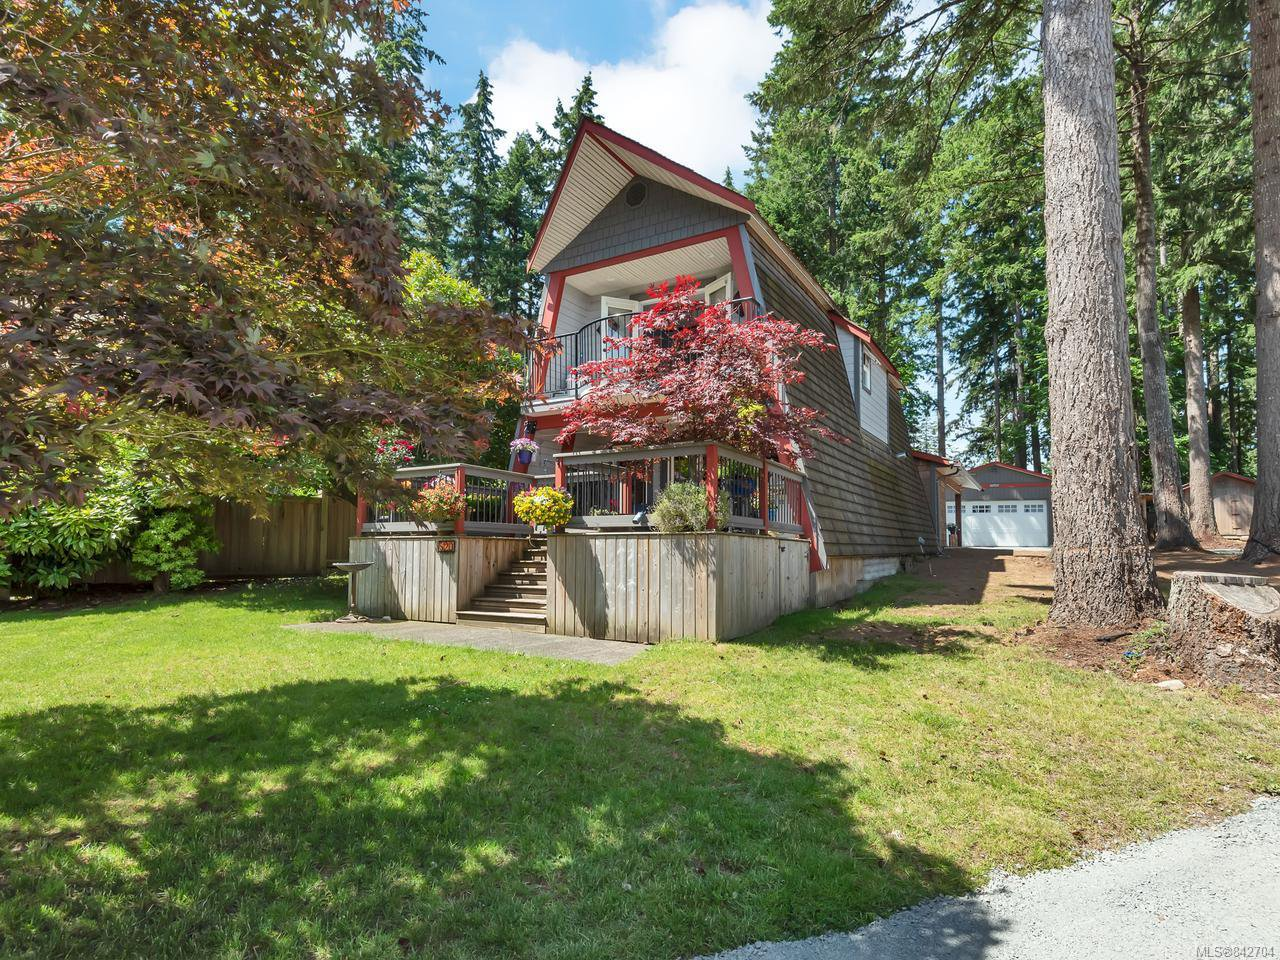 Main Photo: 520 Old Petersen Rd in CAMPBELL RIVER: CR Campbell River West House for sale (Campbell River)  : MLS®# 842704